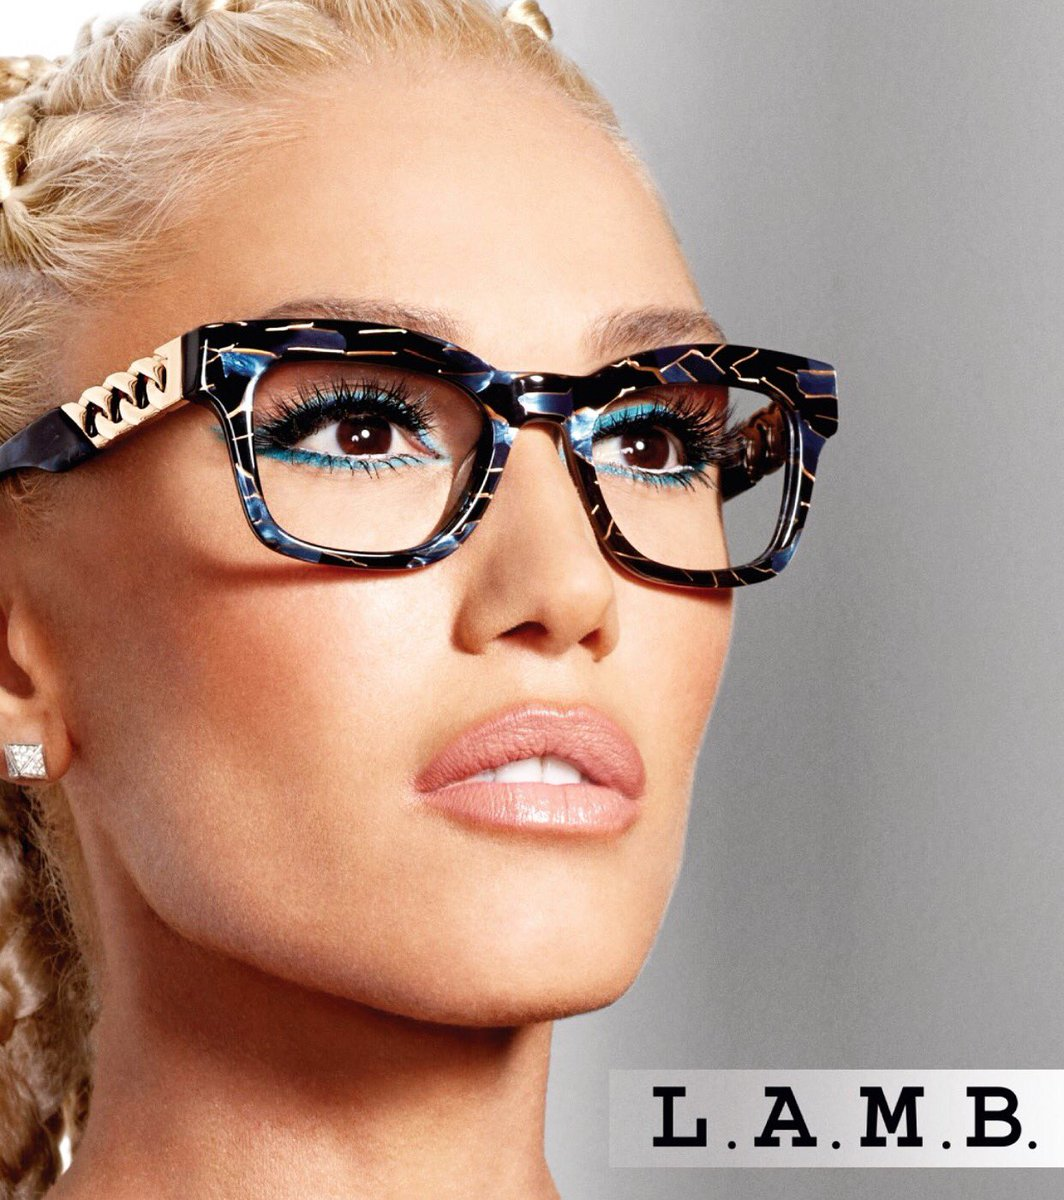 bb5110efcd L.A.M.B. and gx 2018 Eyewear Collections Available Now – Beacon ...